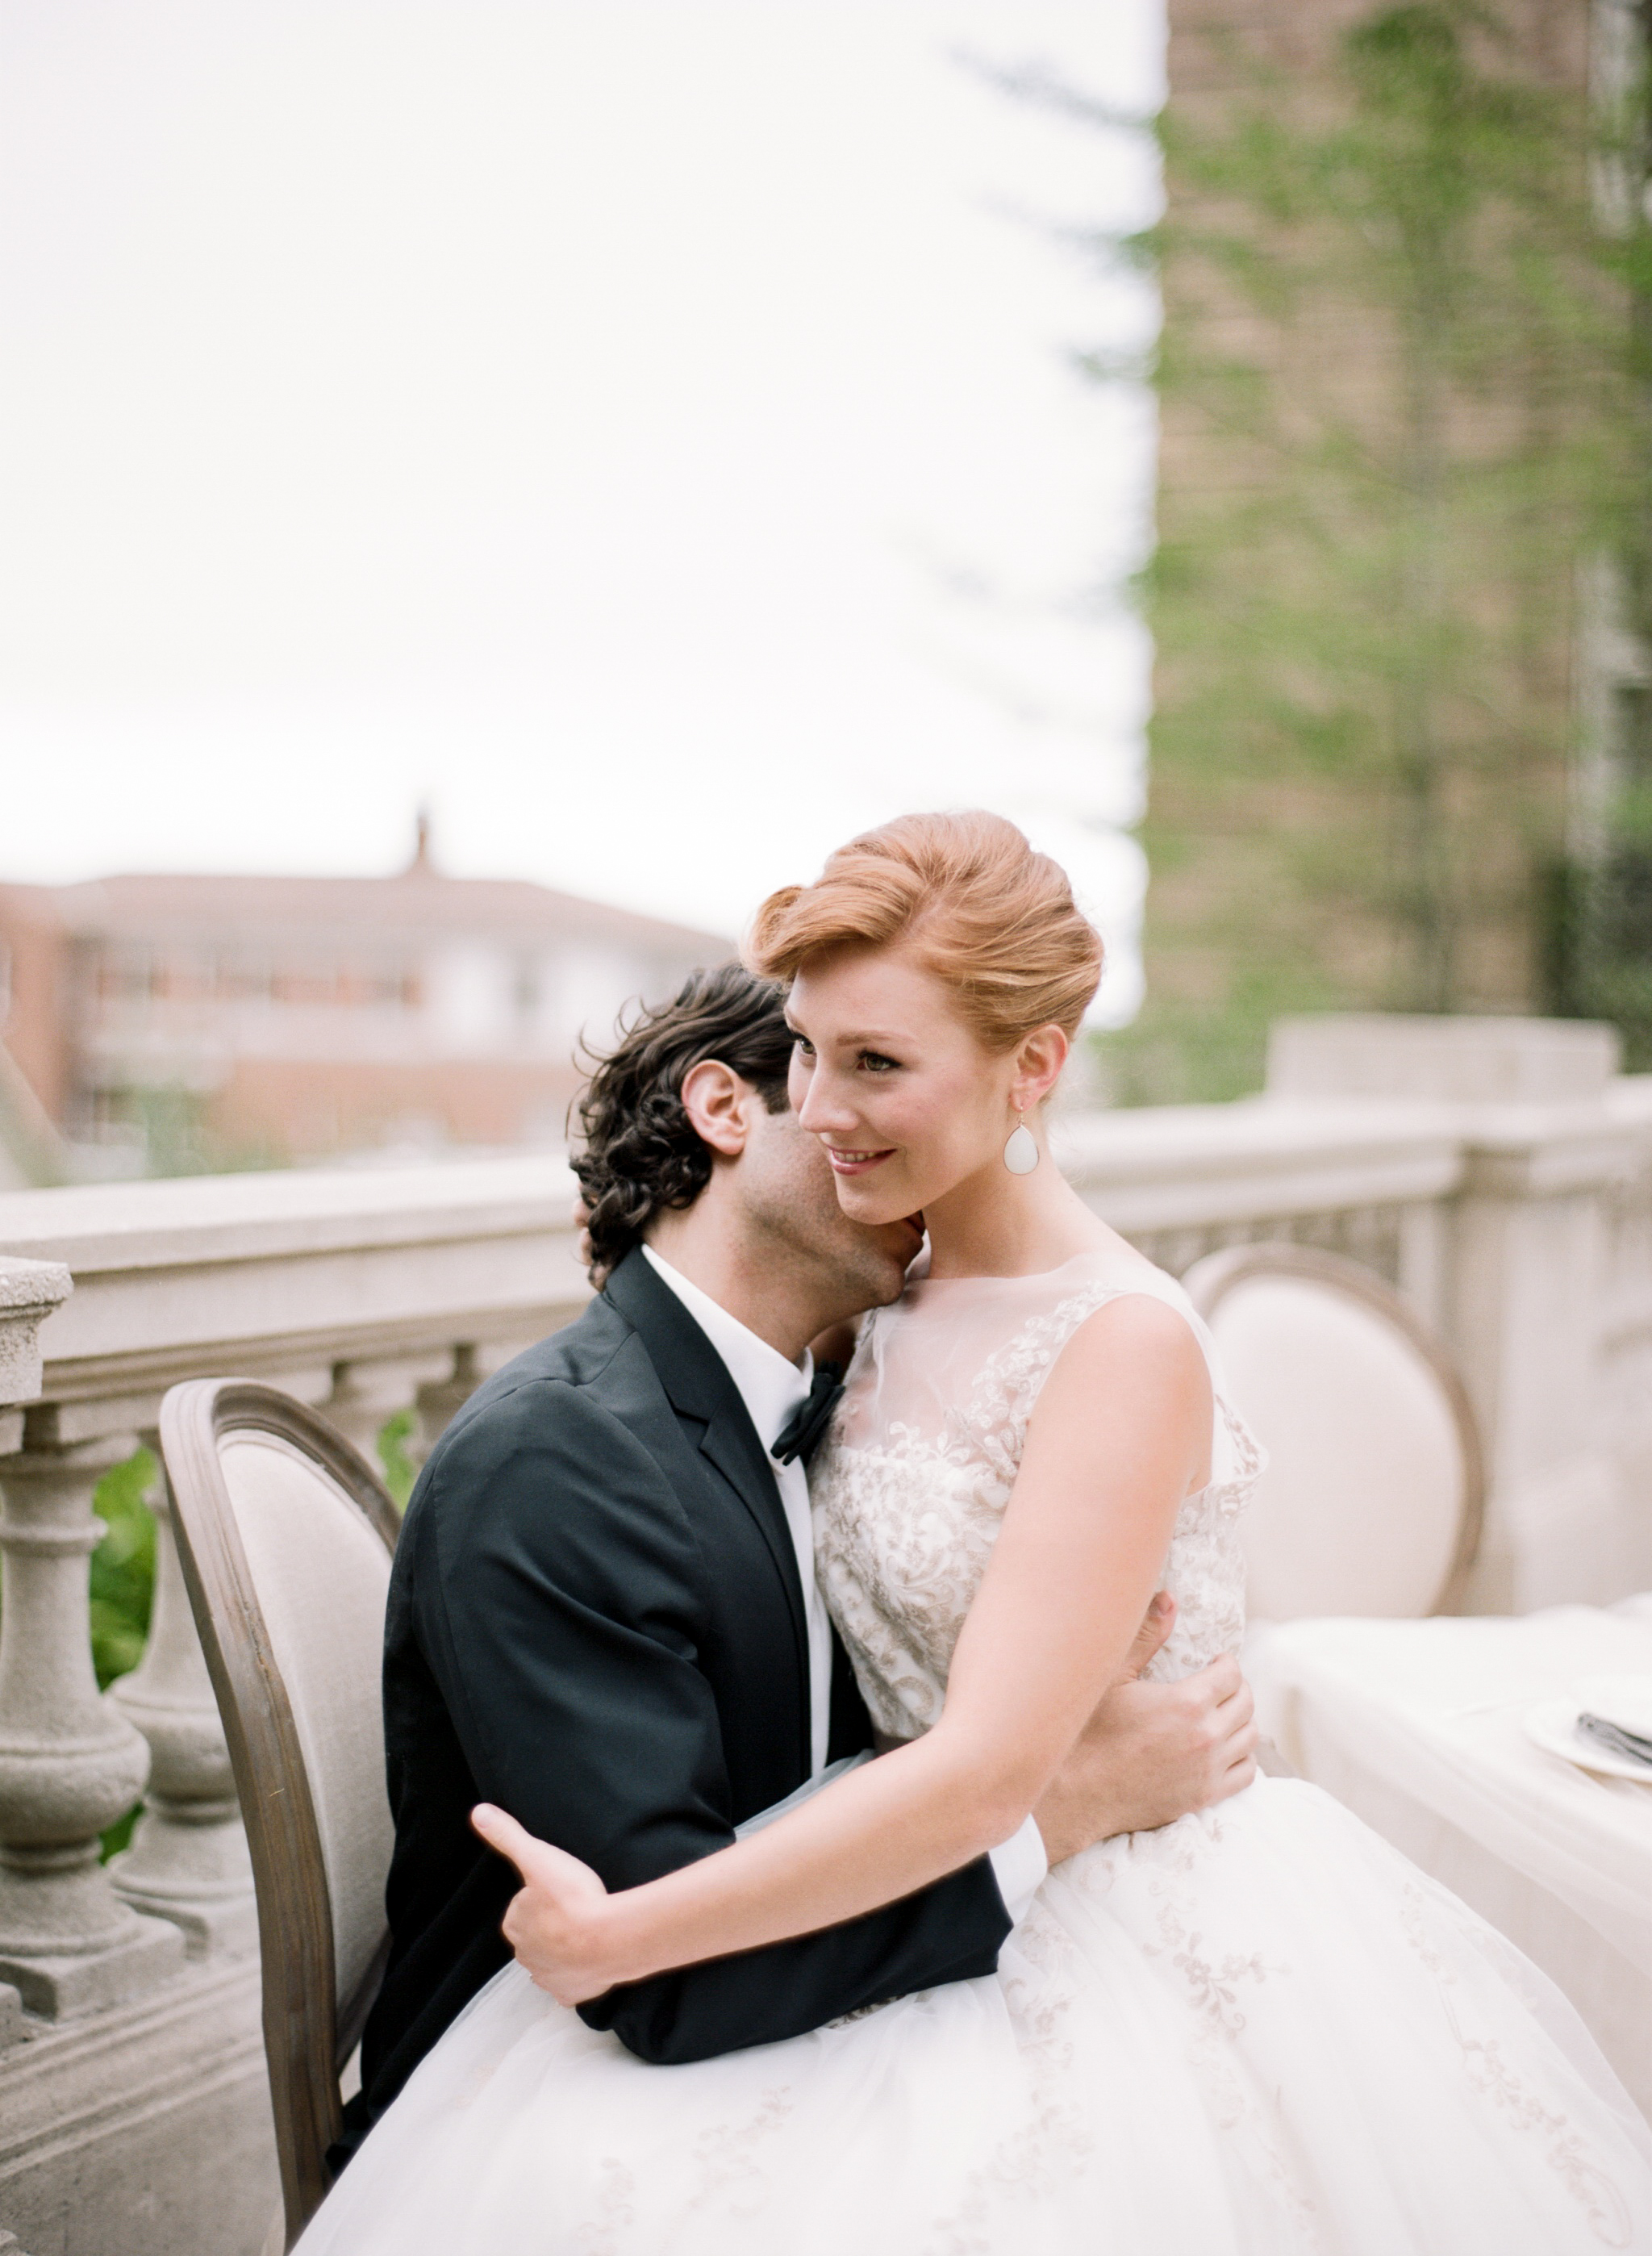 A groom kisses his bride's neck at an intimate wedding reception at the Lyon Steps in San Francisco; Sylvie Gil Photography